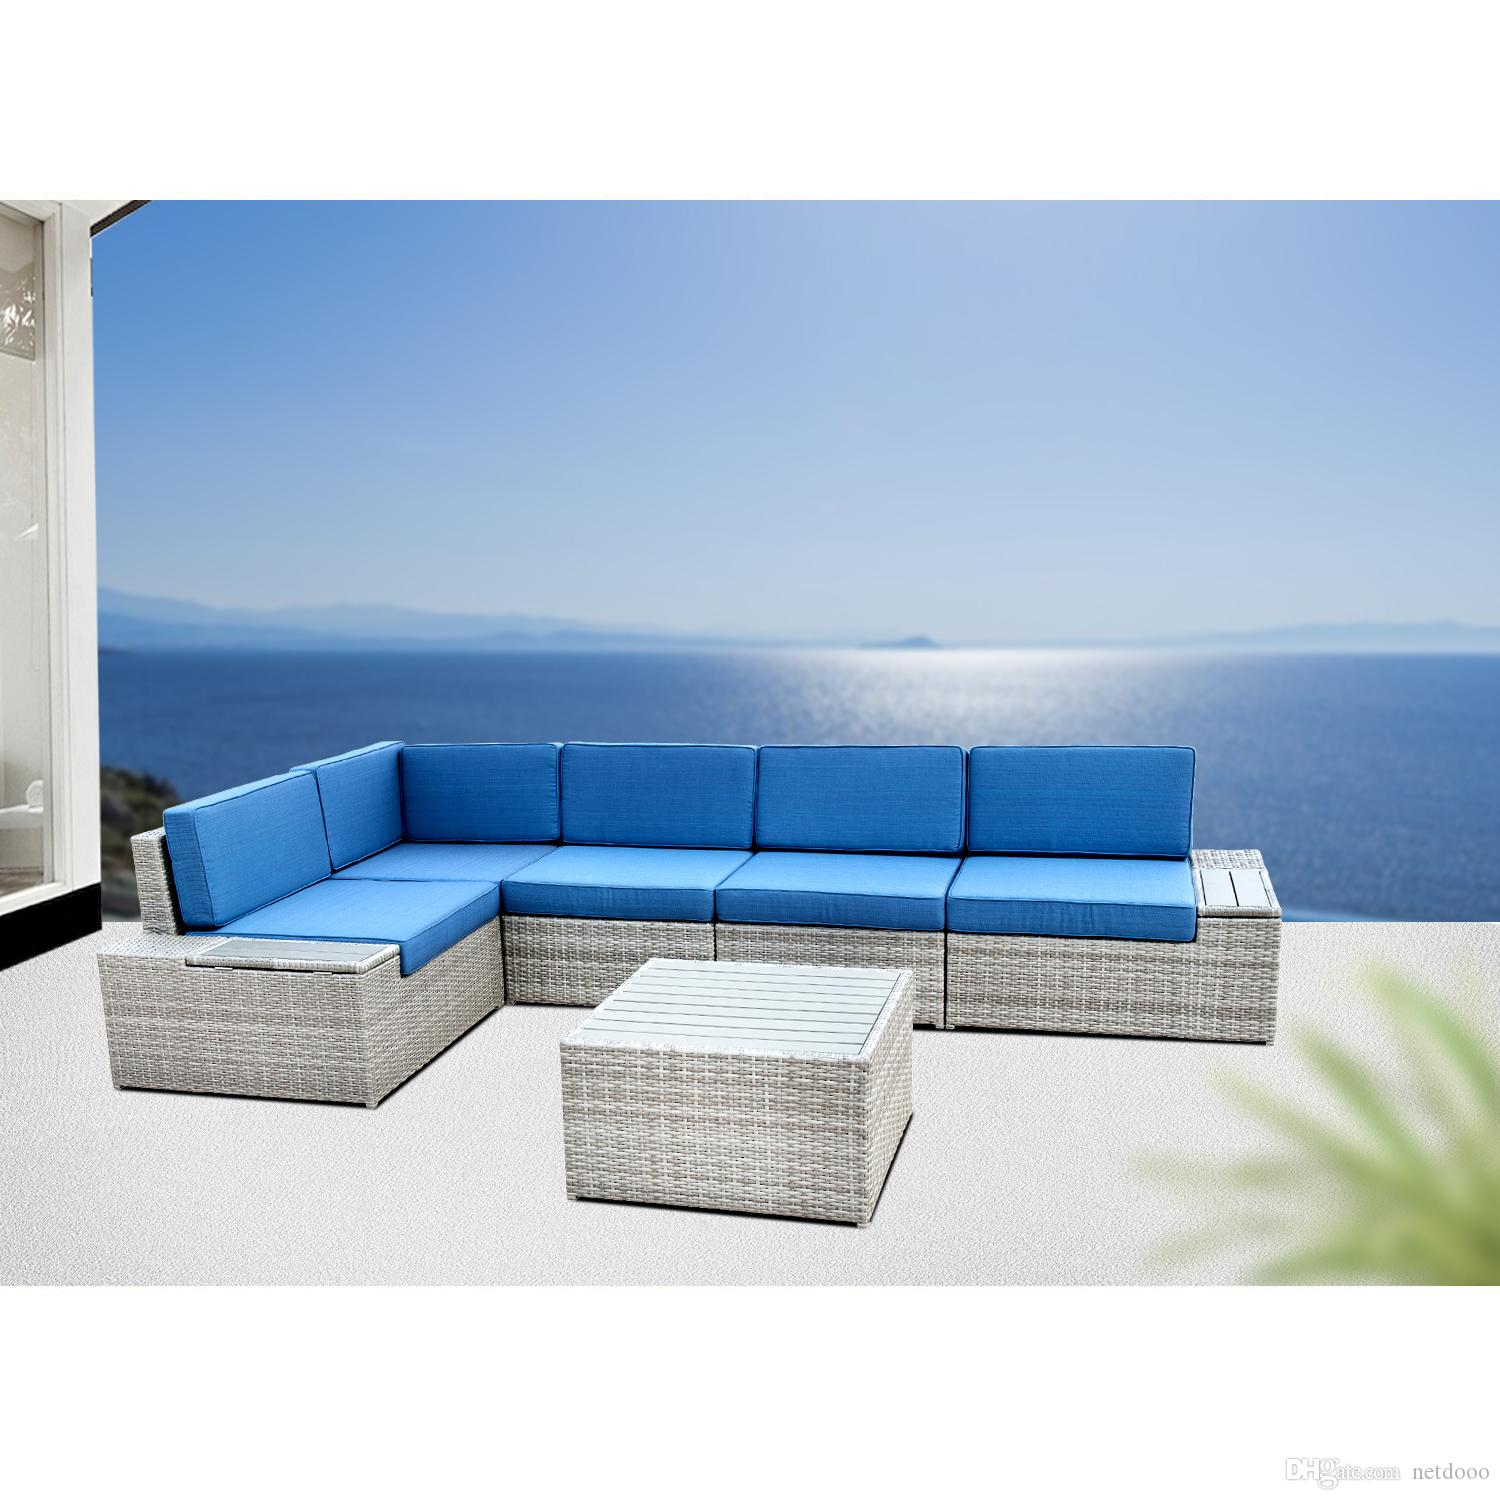 2018 Outdoor Furniture Outdoor Patio Furniture Sectional Sofa Grey Wicker  With Blue Cushions With Ice Can New Design From Netdooo, $1205.03    Dhgate.Com